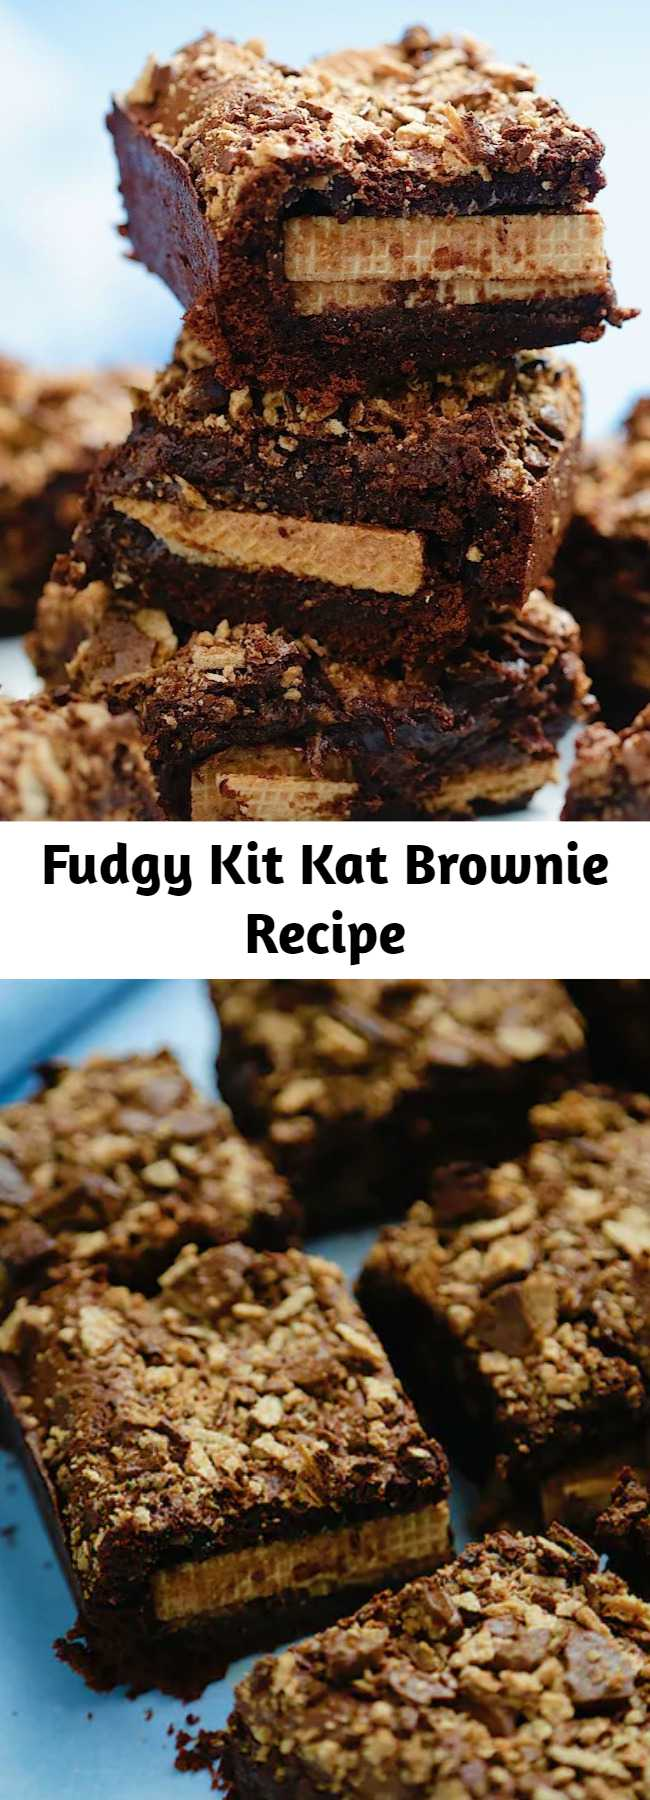 Fudgy Kit Kat Brownie Recipe - Deliciously thick and fudgy chocolate brownies that are stuffed with whole KitKats, and generously topped with broken KitKats! We added some Kit Kats and took brownies to a whole new level.